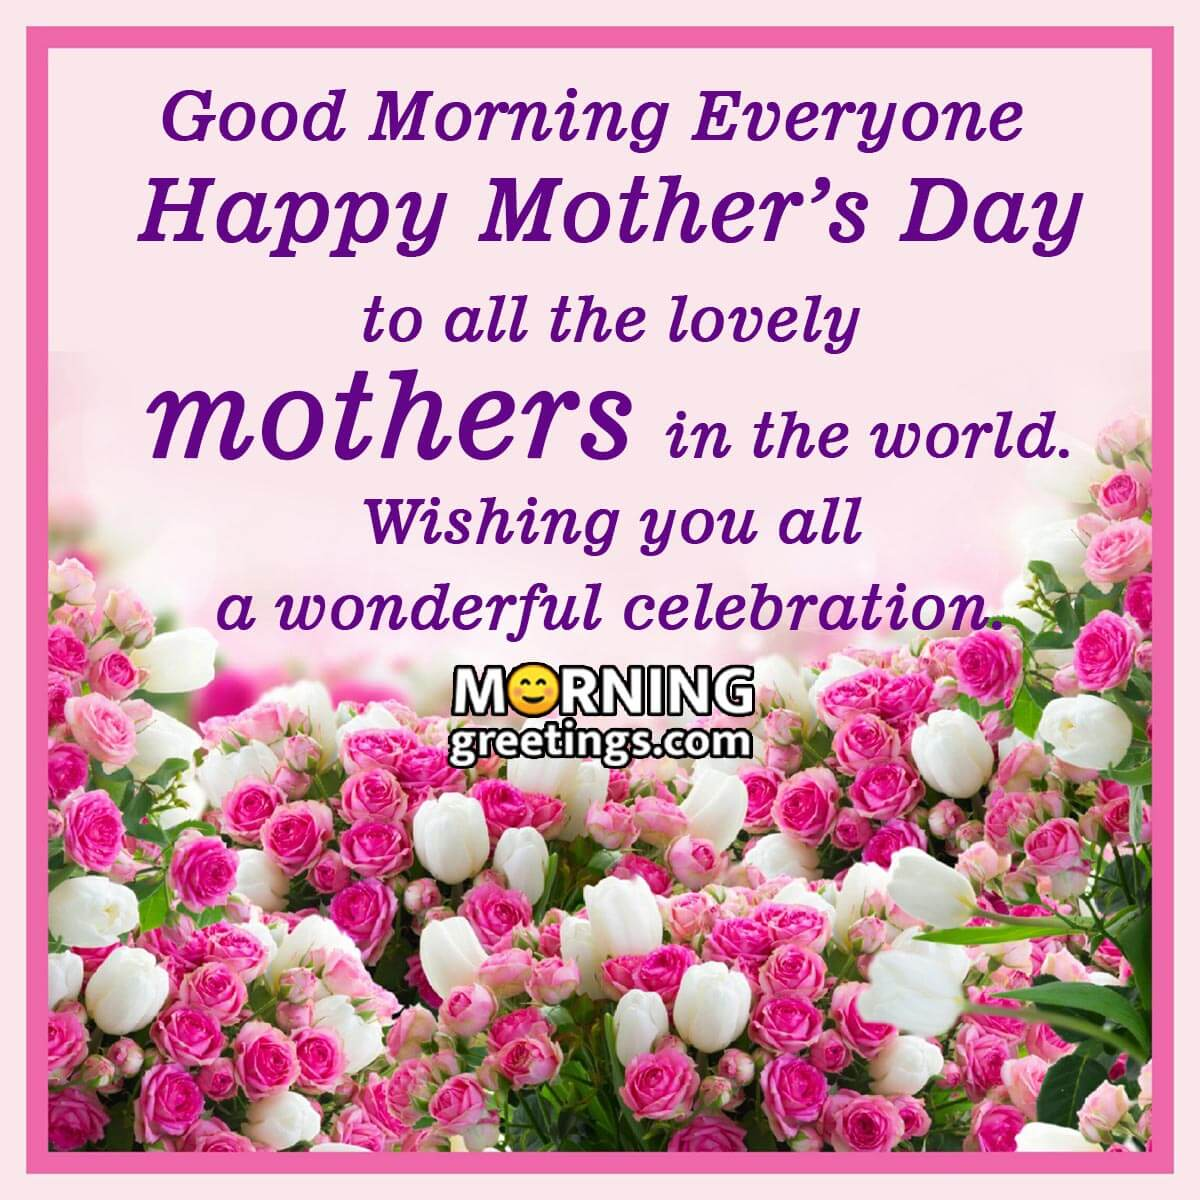 20 Good Morning Mother's Day Pictures   Morning Greetings ...